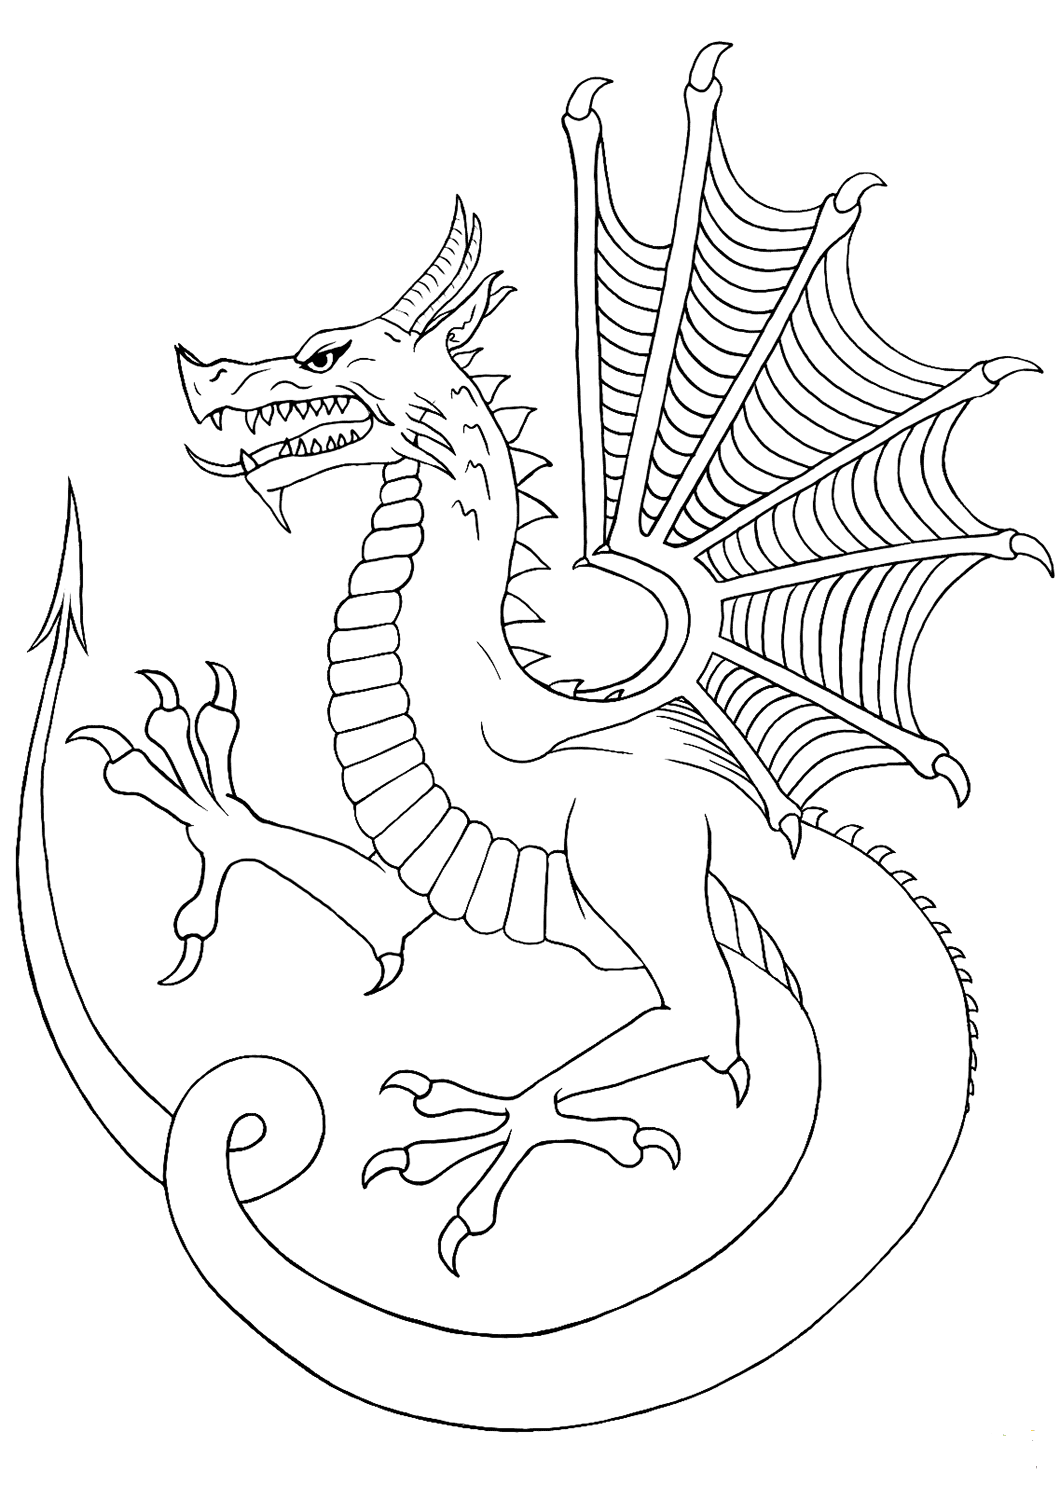 printable dragon pictures color the dragon coloring pages in websites printable dragon pictures